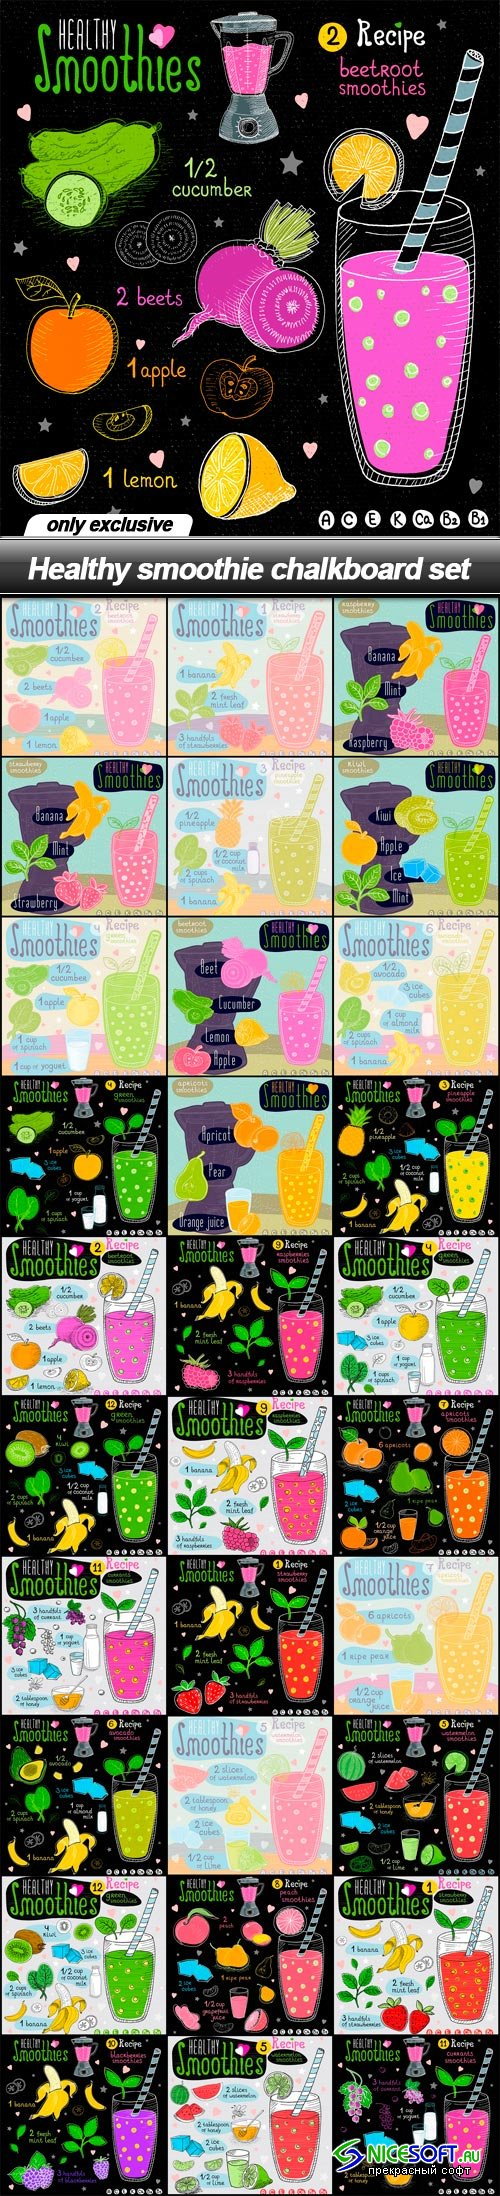 Healthy smoothie chalkboard set